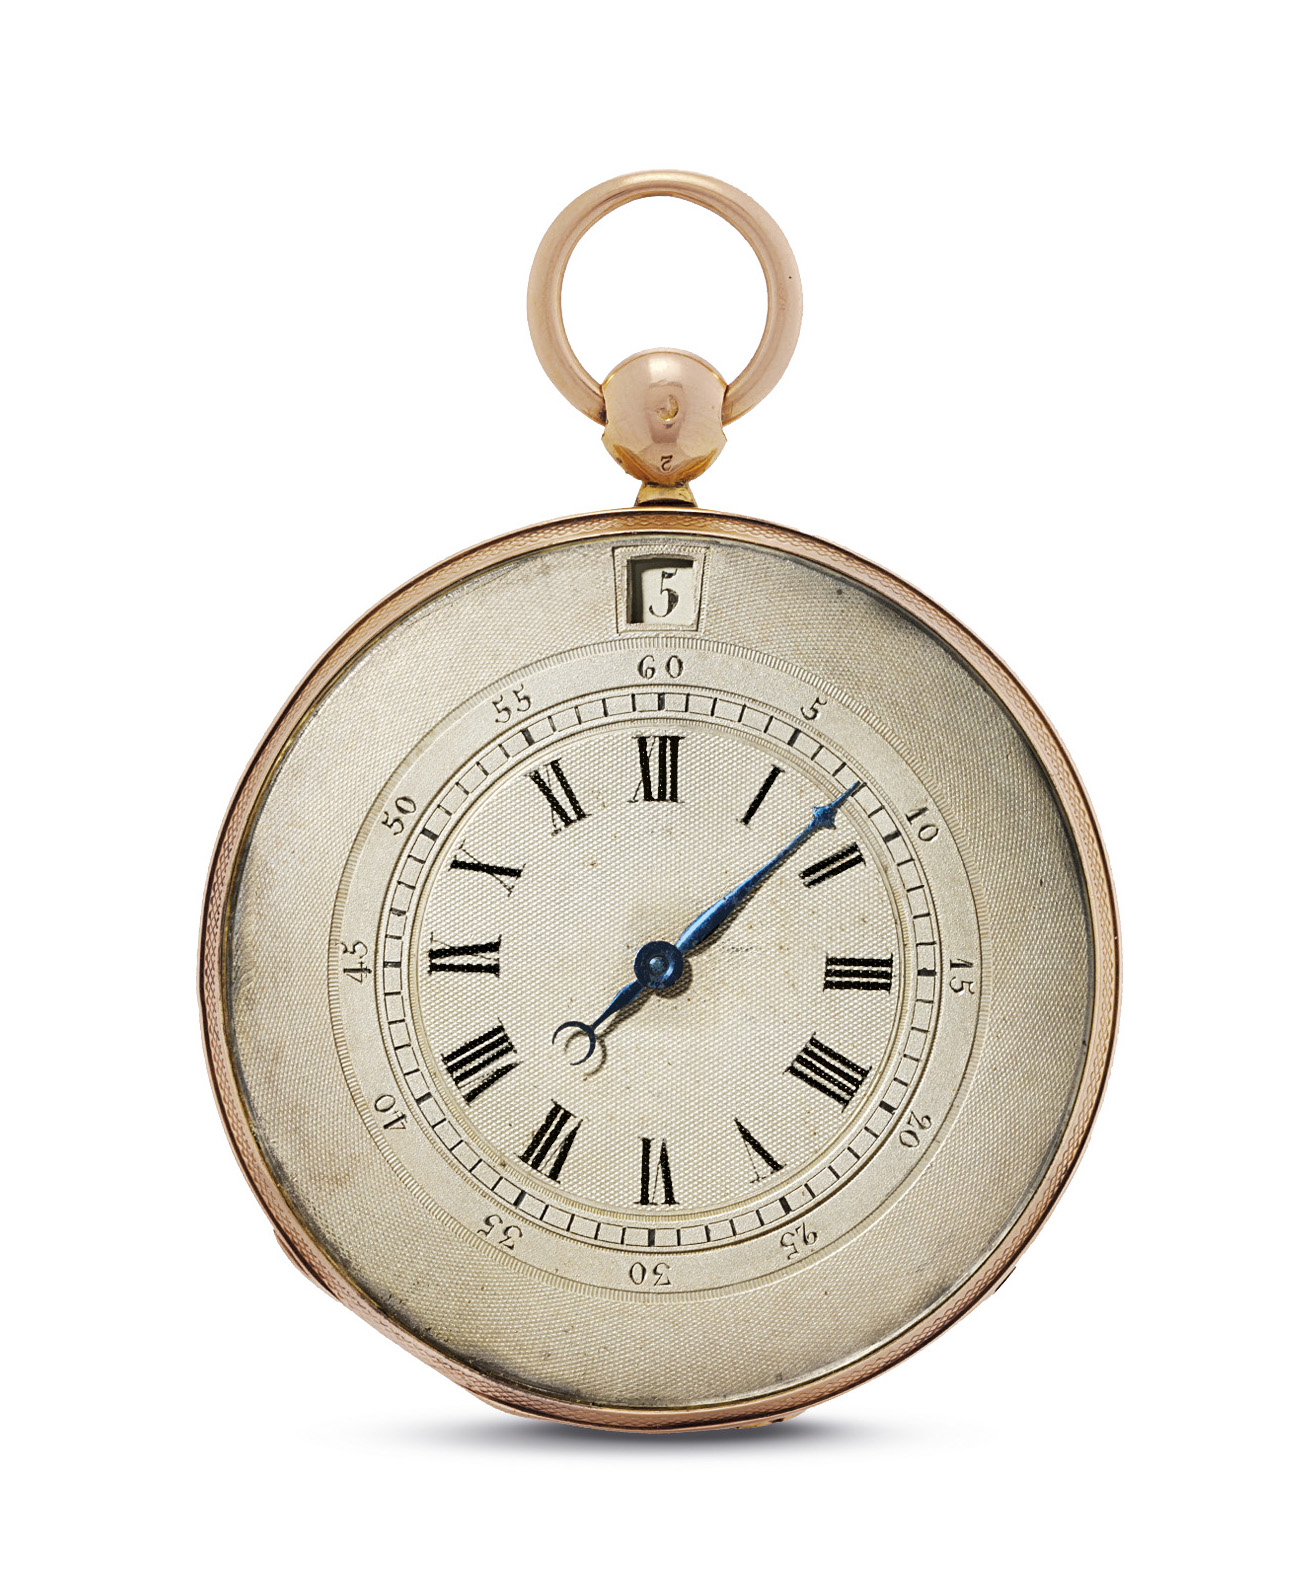 ANON. A GOLD OPENFACE JUMP HOUR CYLINDER WATCH